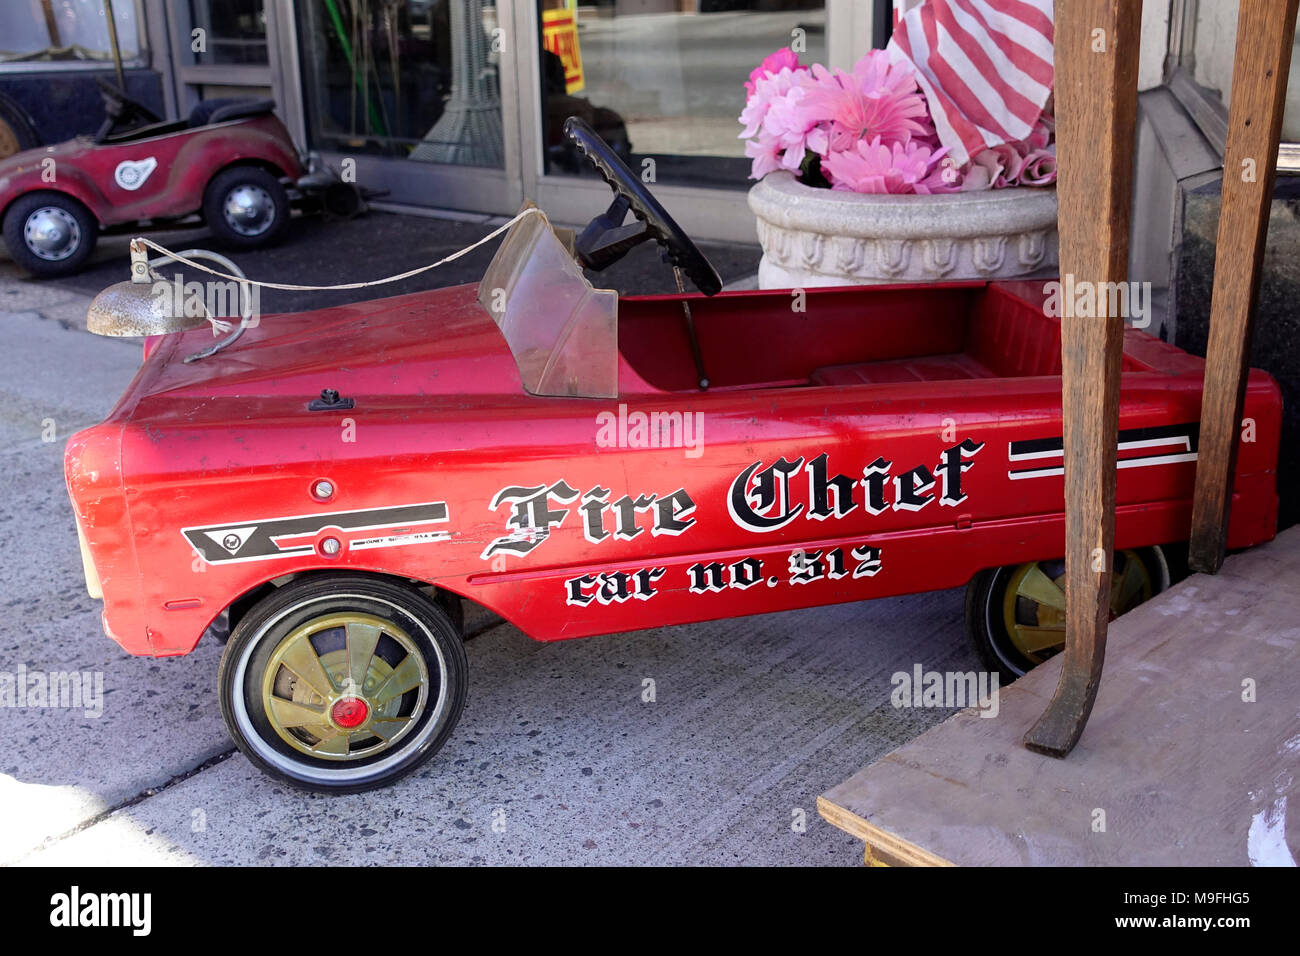 Old Vintage Pedal Car High Resolution Stock Photography And Images Alamy